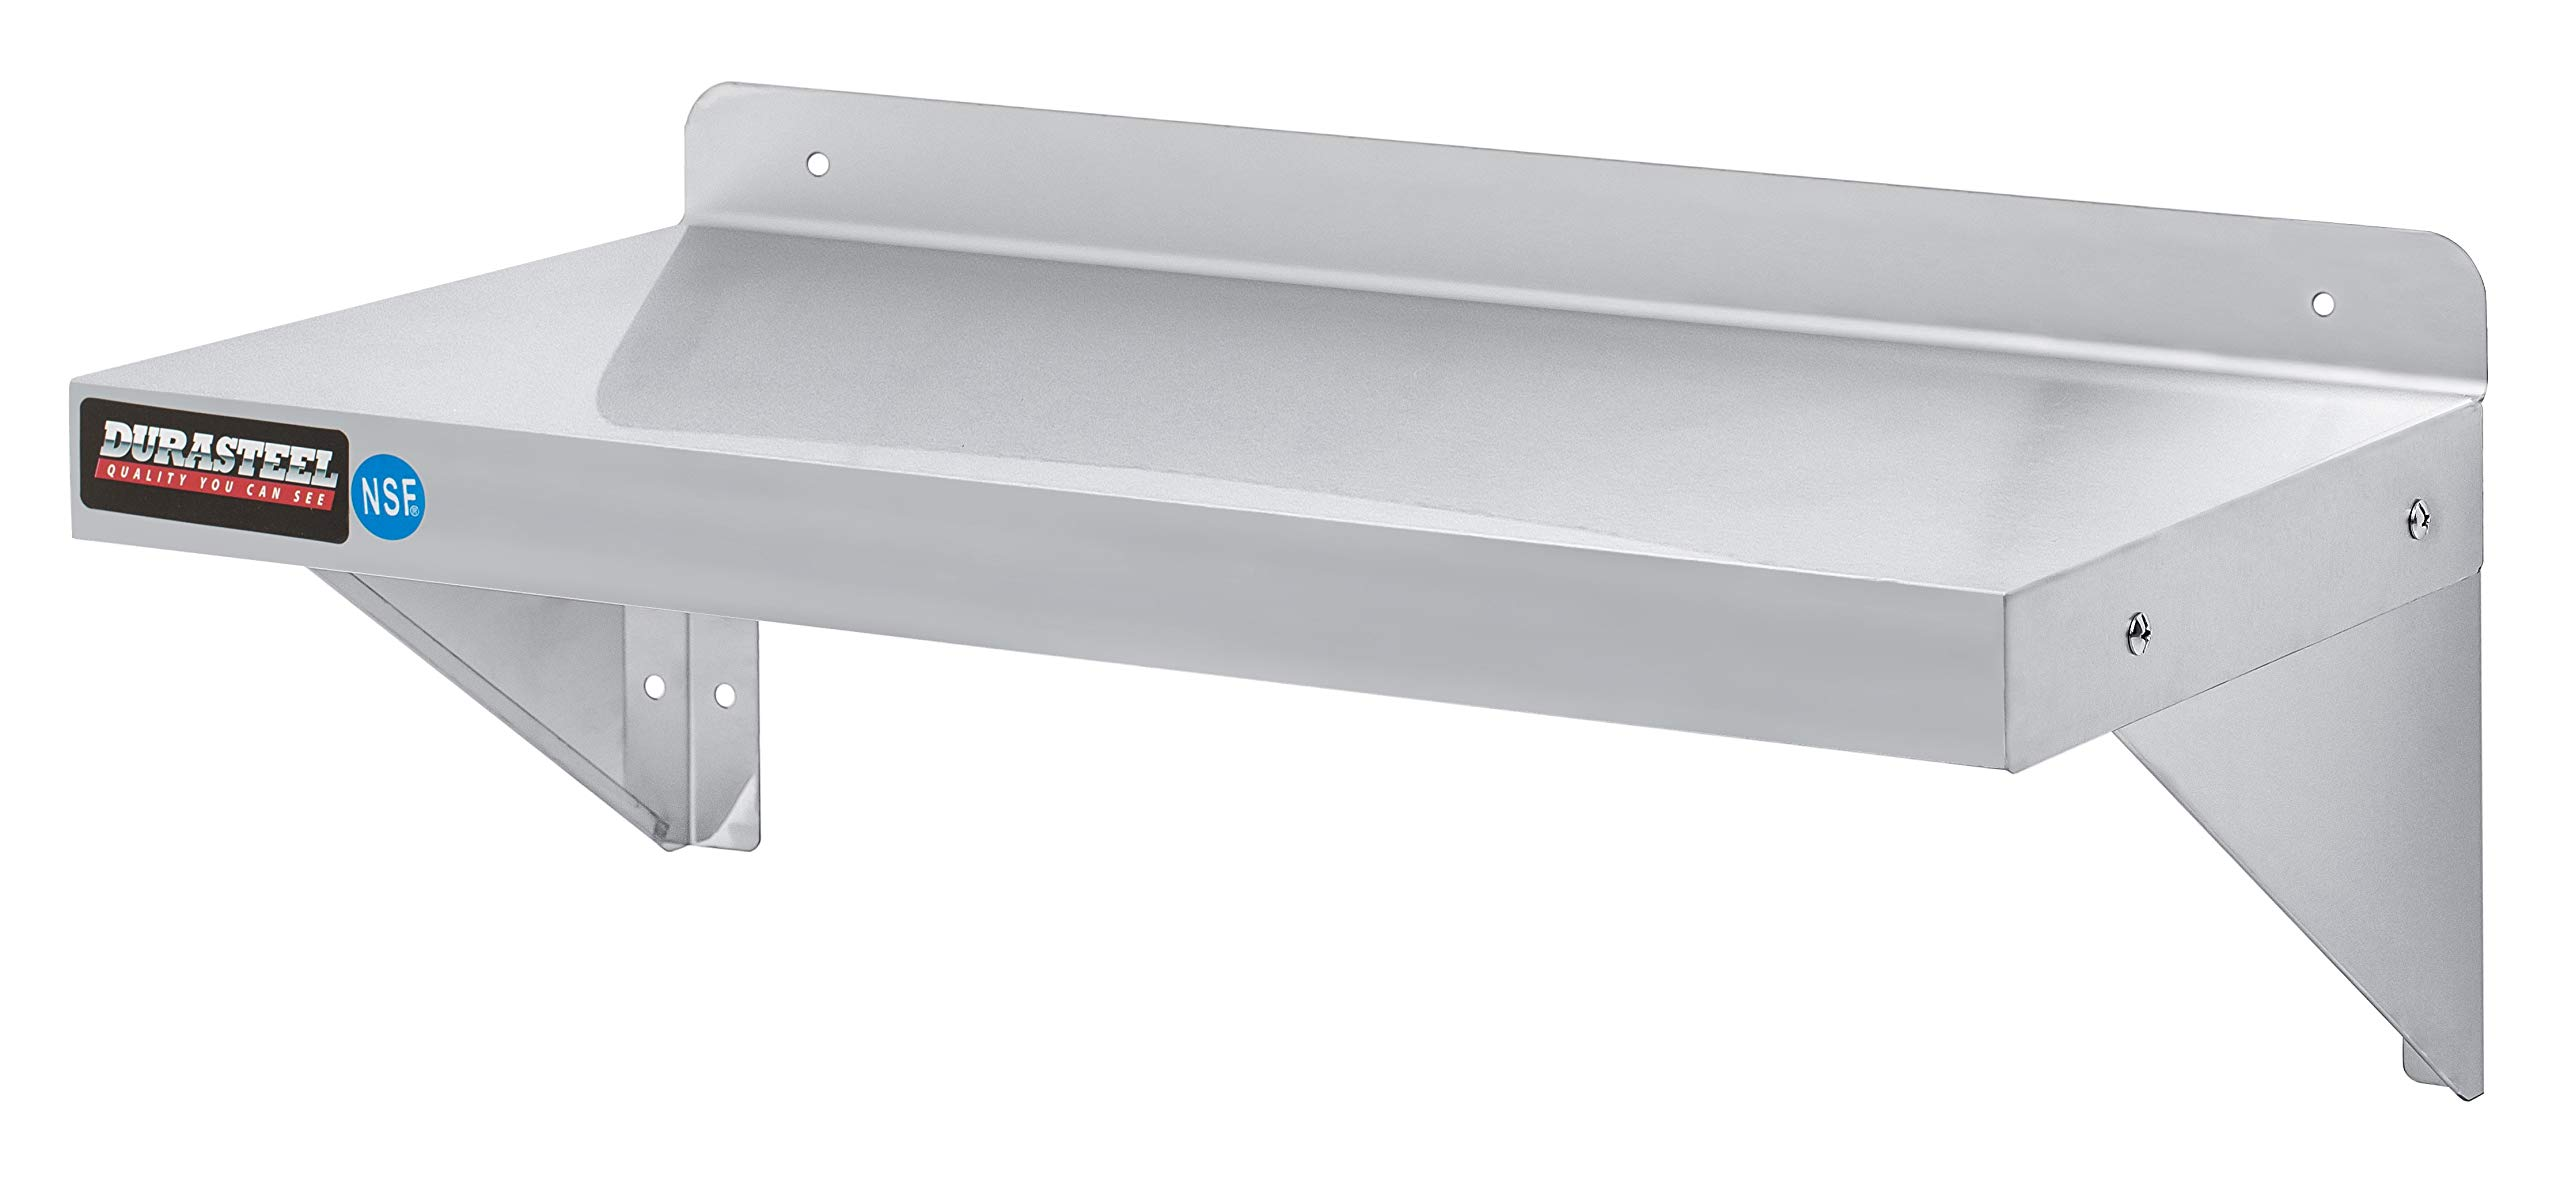 "DuraSteel Stainless Steel Wall Mount Shelf 24"" Wide x 14"" Deep Commercial Grade - NSF Approved - Good for Restaurant, Bar, Home, Kitchen, Laundry, Garage and Utility Room"